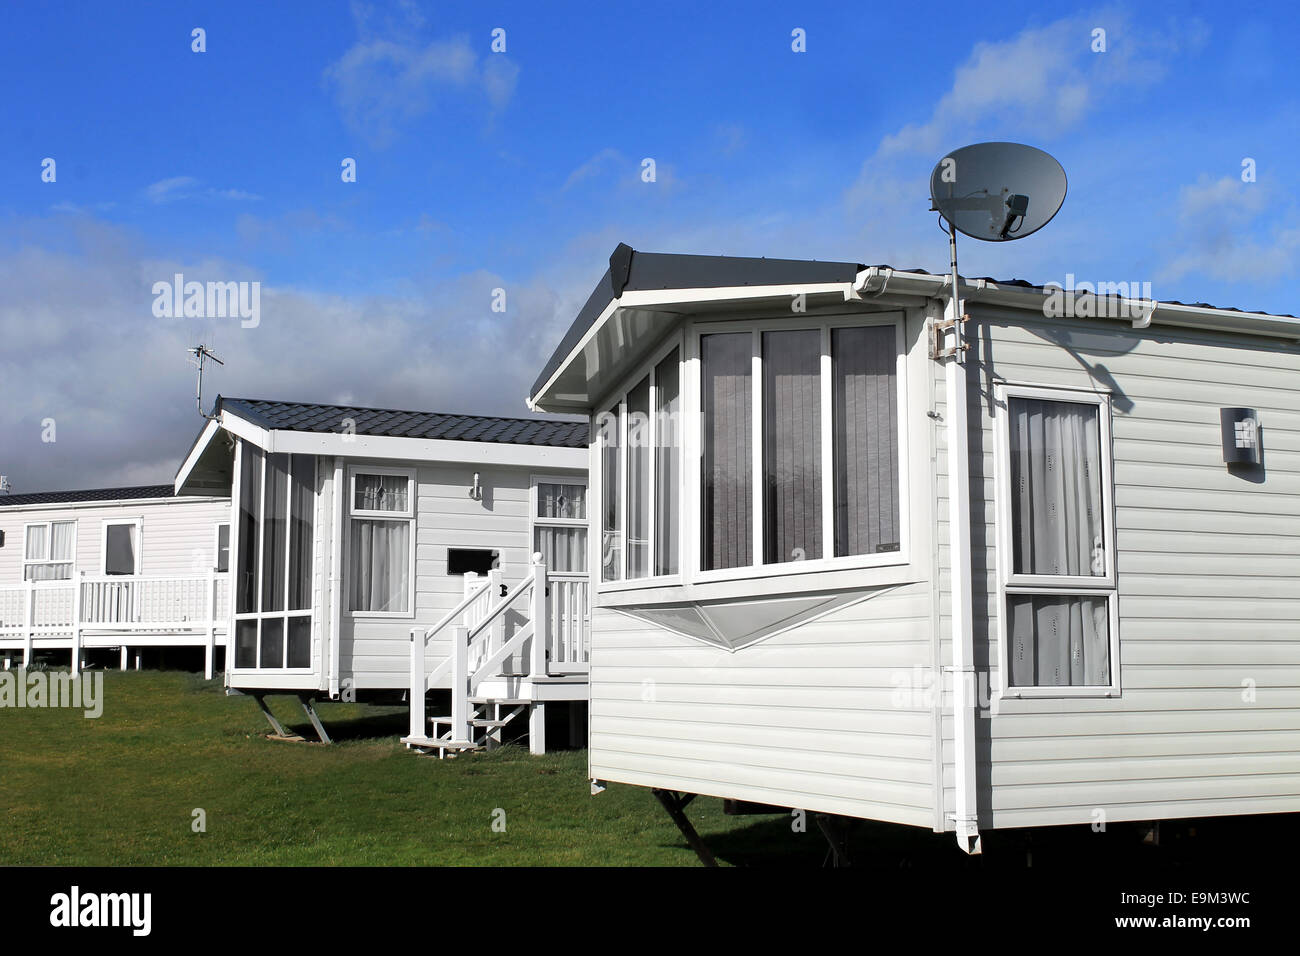 Scenic view of a caravan or trailer park in summer with blue sky and cloudscape background. Stock Photo